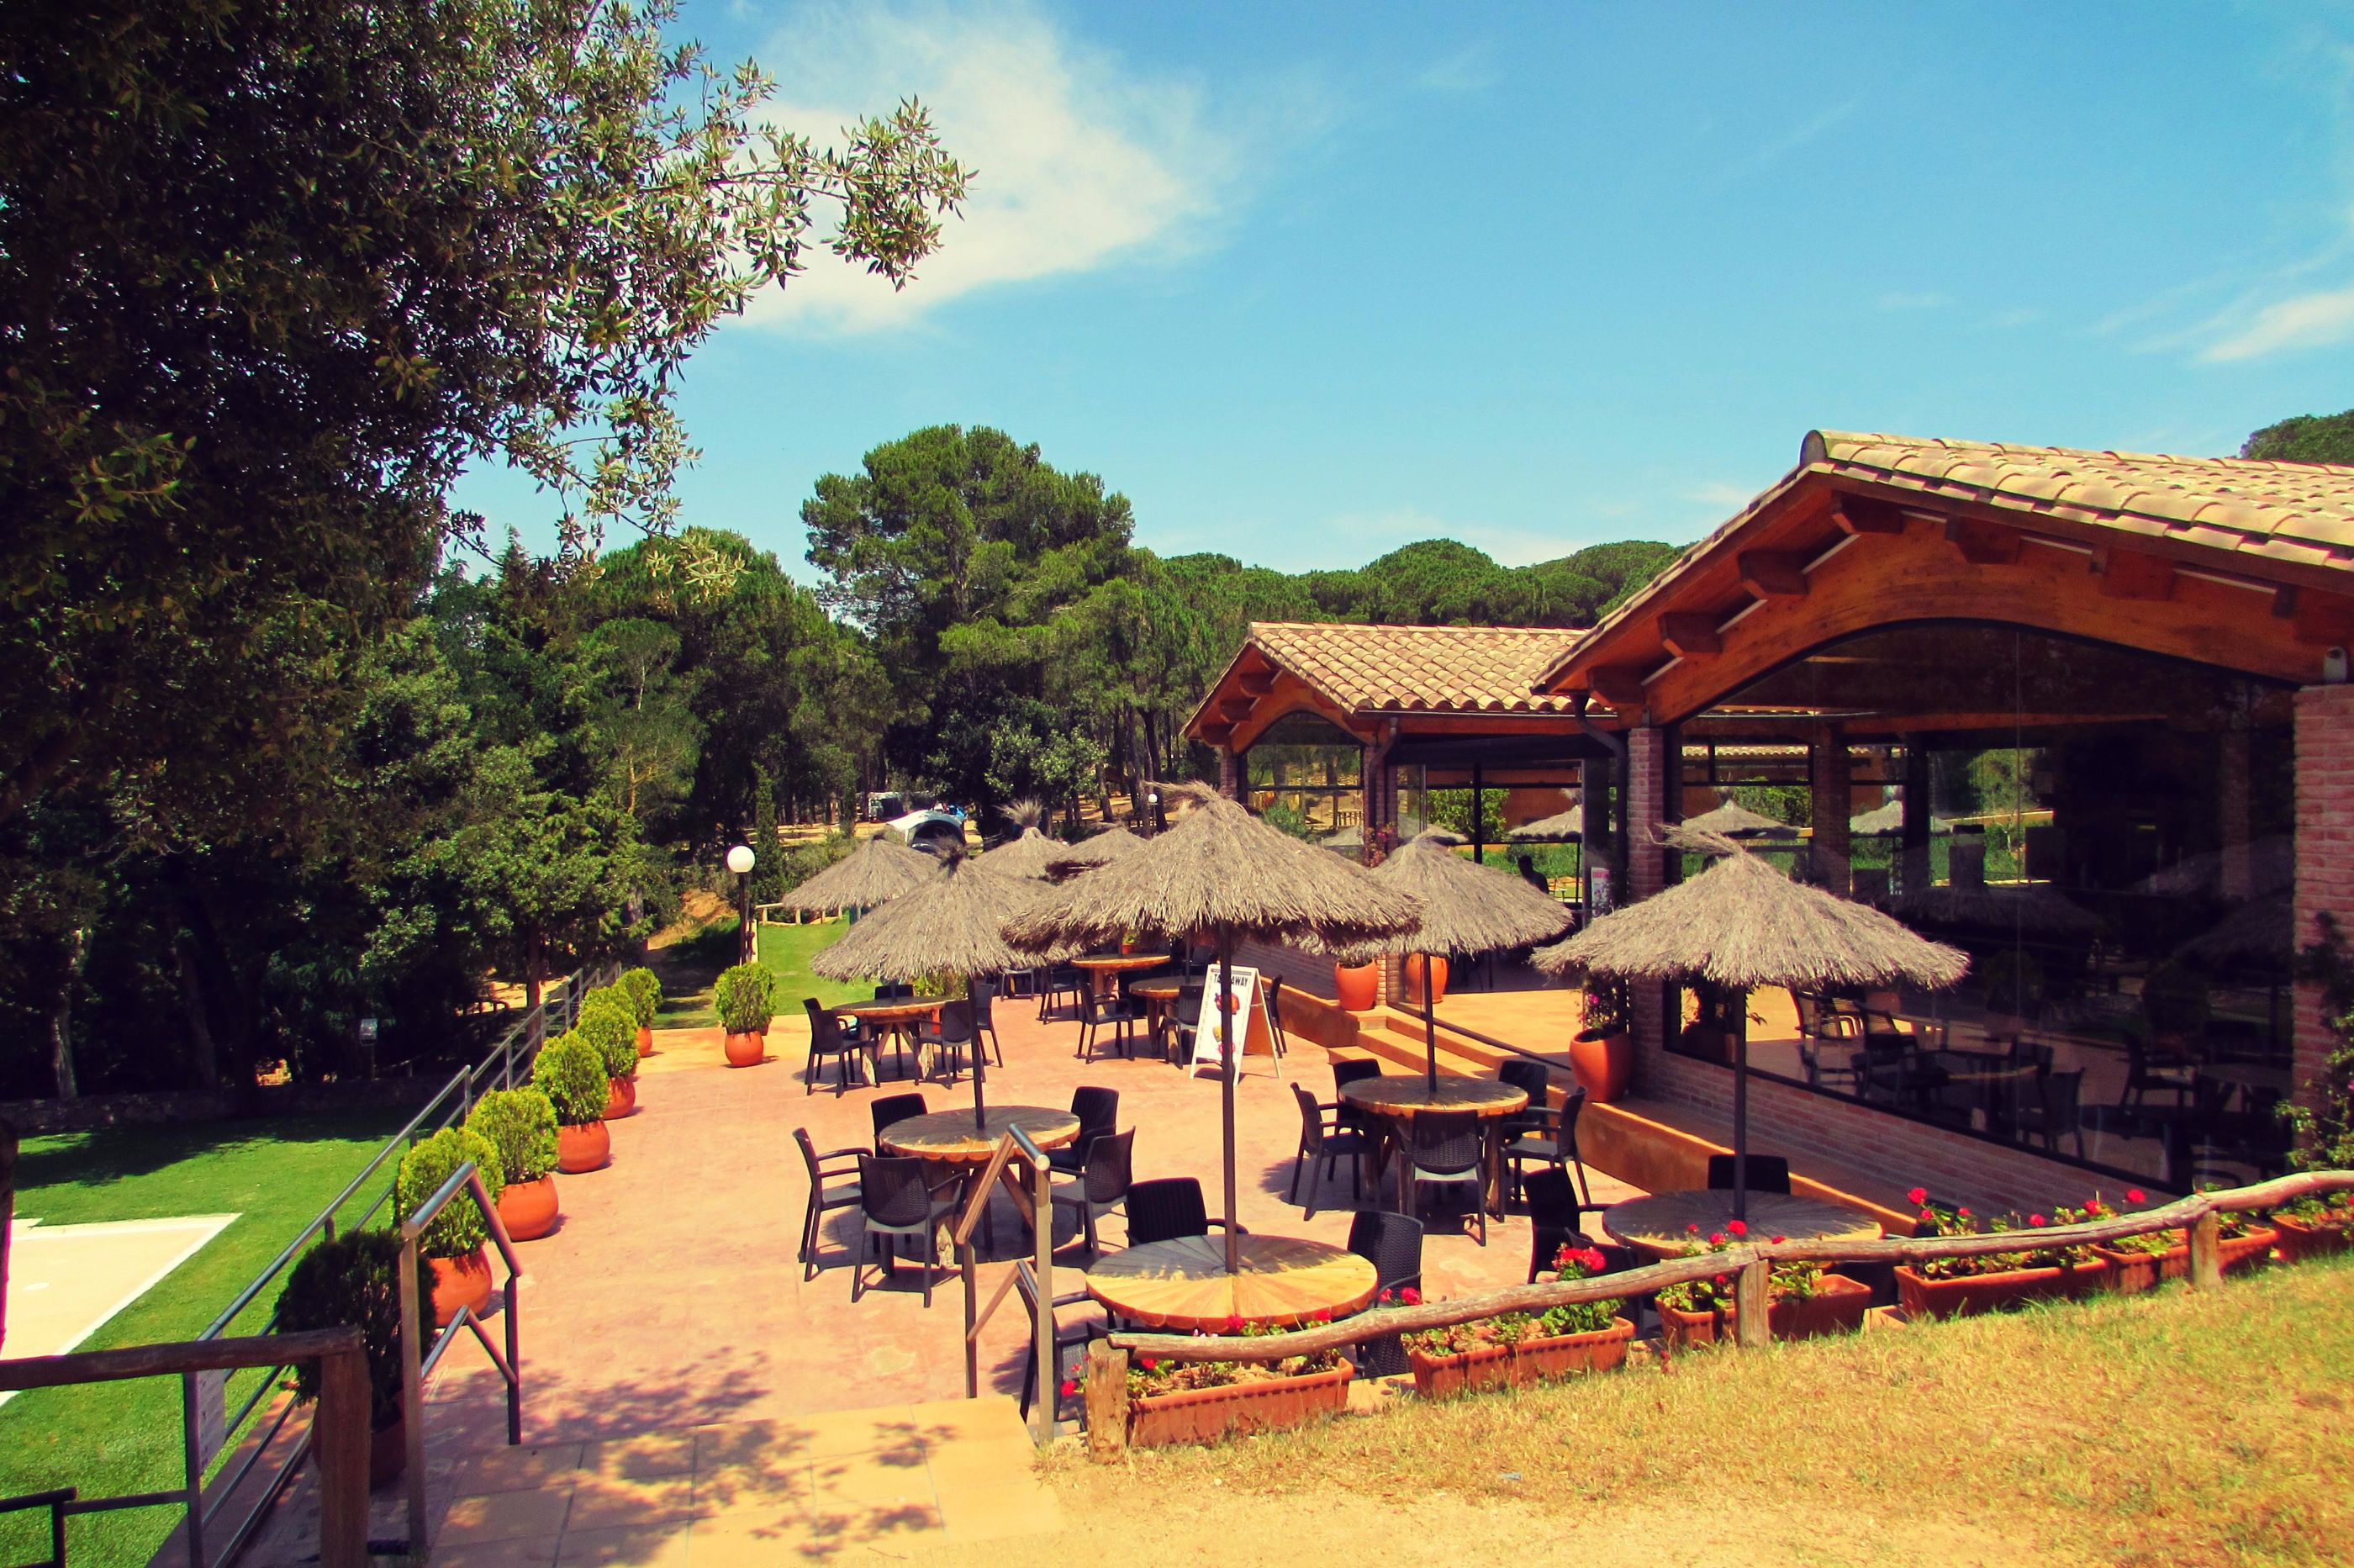 Camping Begur One Of The Very Best Campsites On The